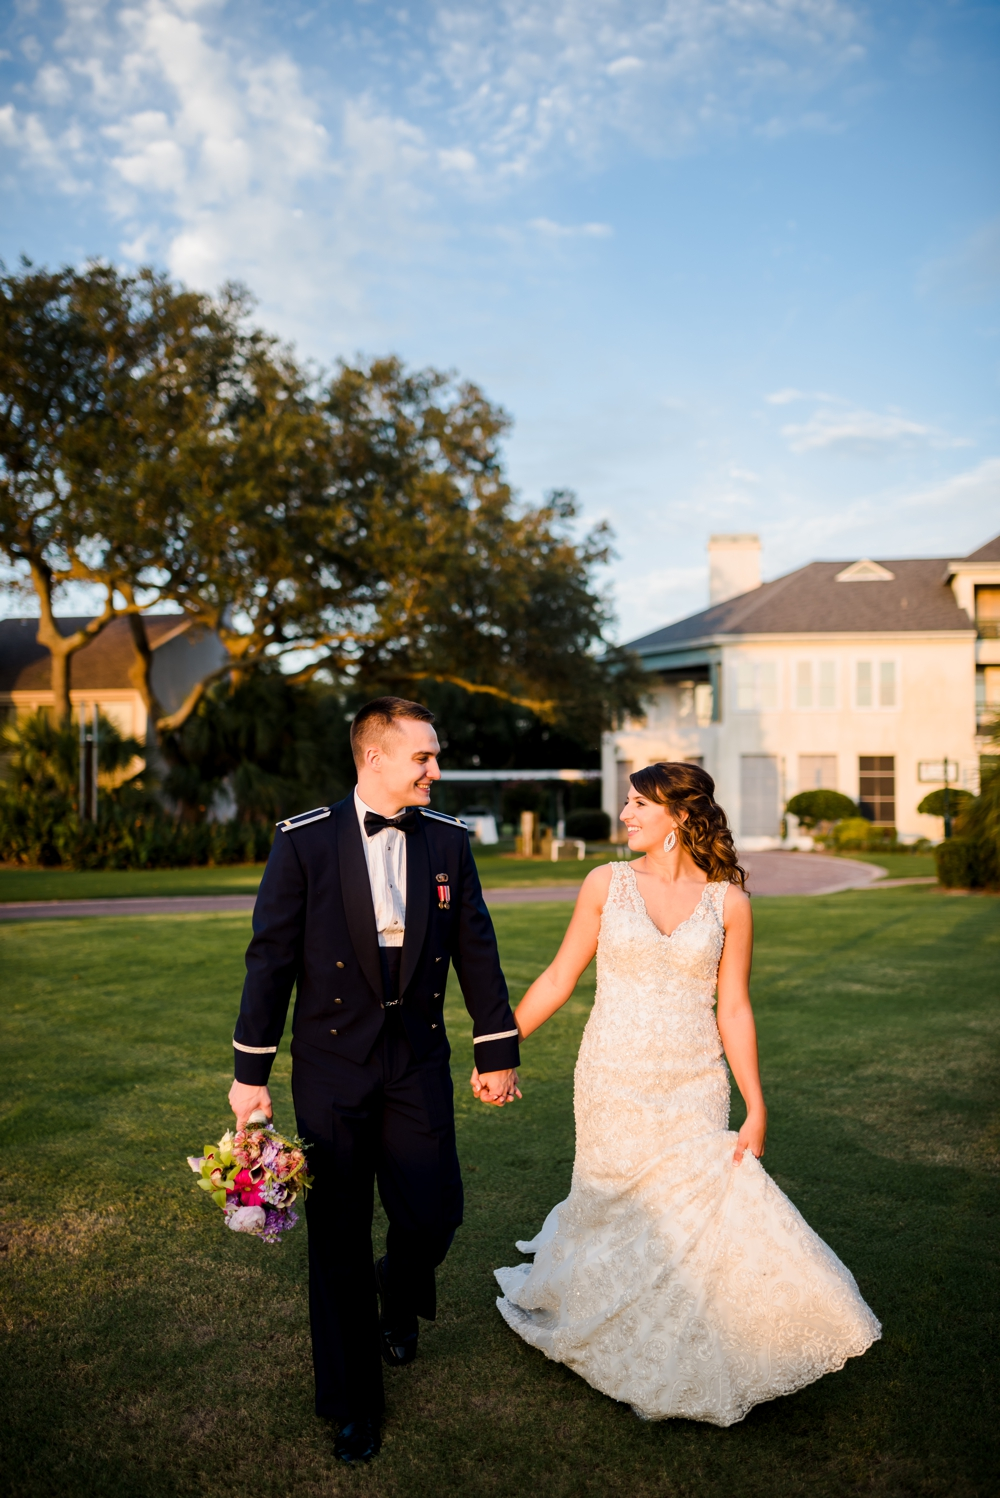 wallin-florida-wedding-photographer-kiersten-grant-162.jpg